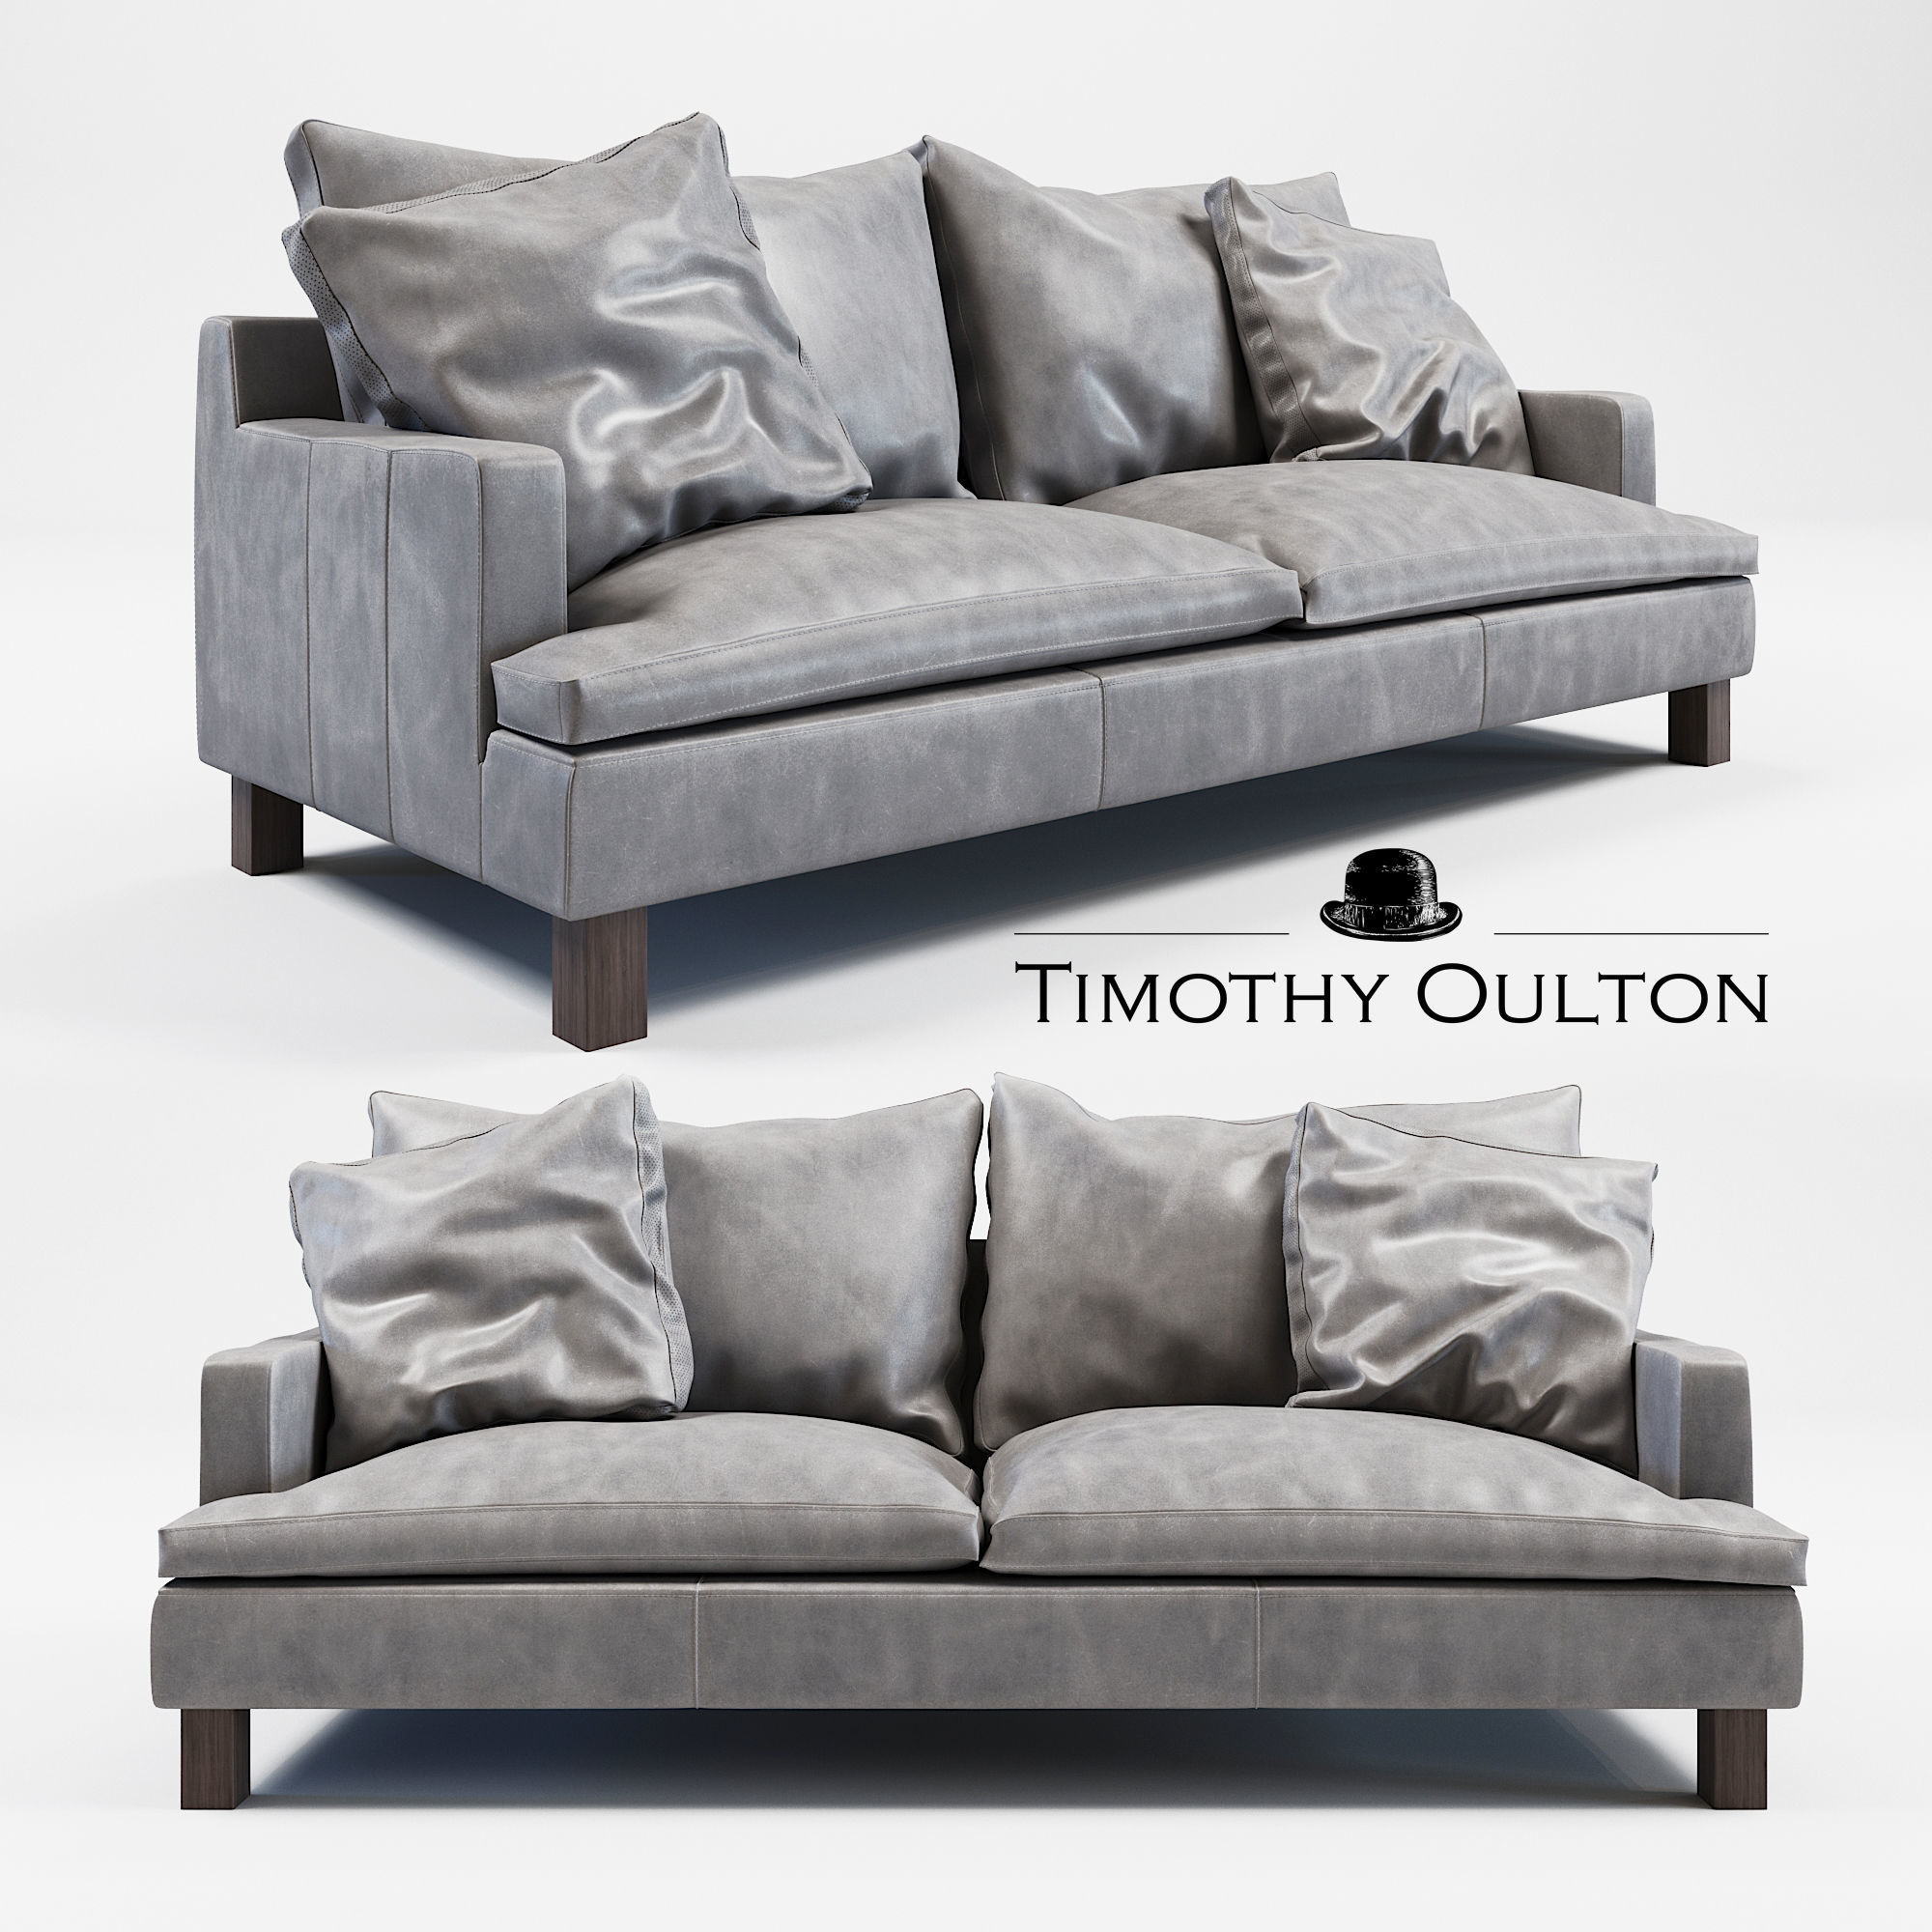 Model Timothy Oulton Lux Sofa Cgtrader